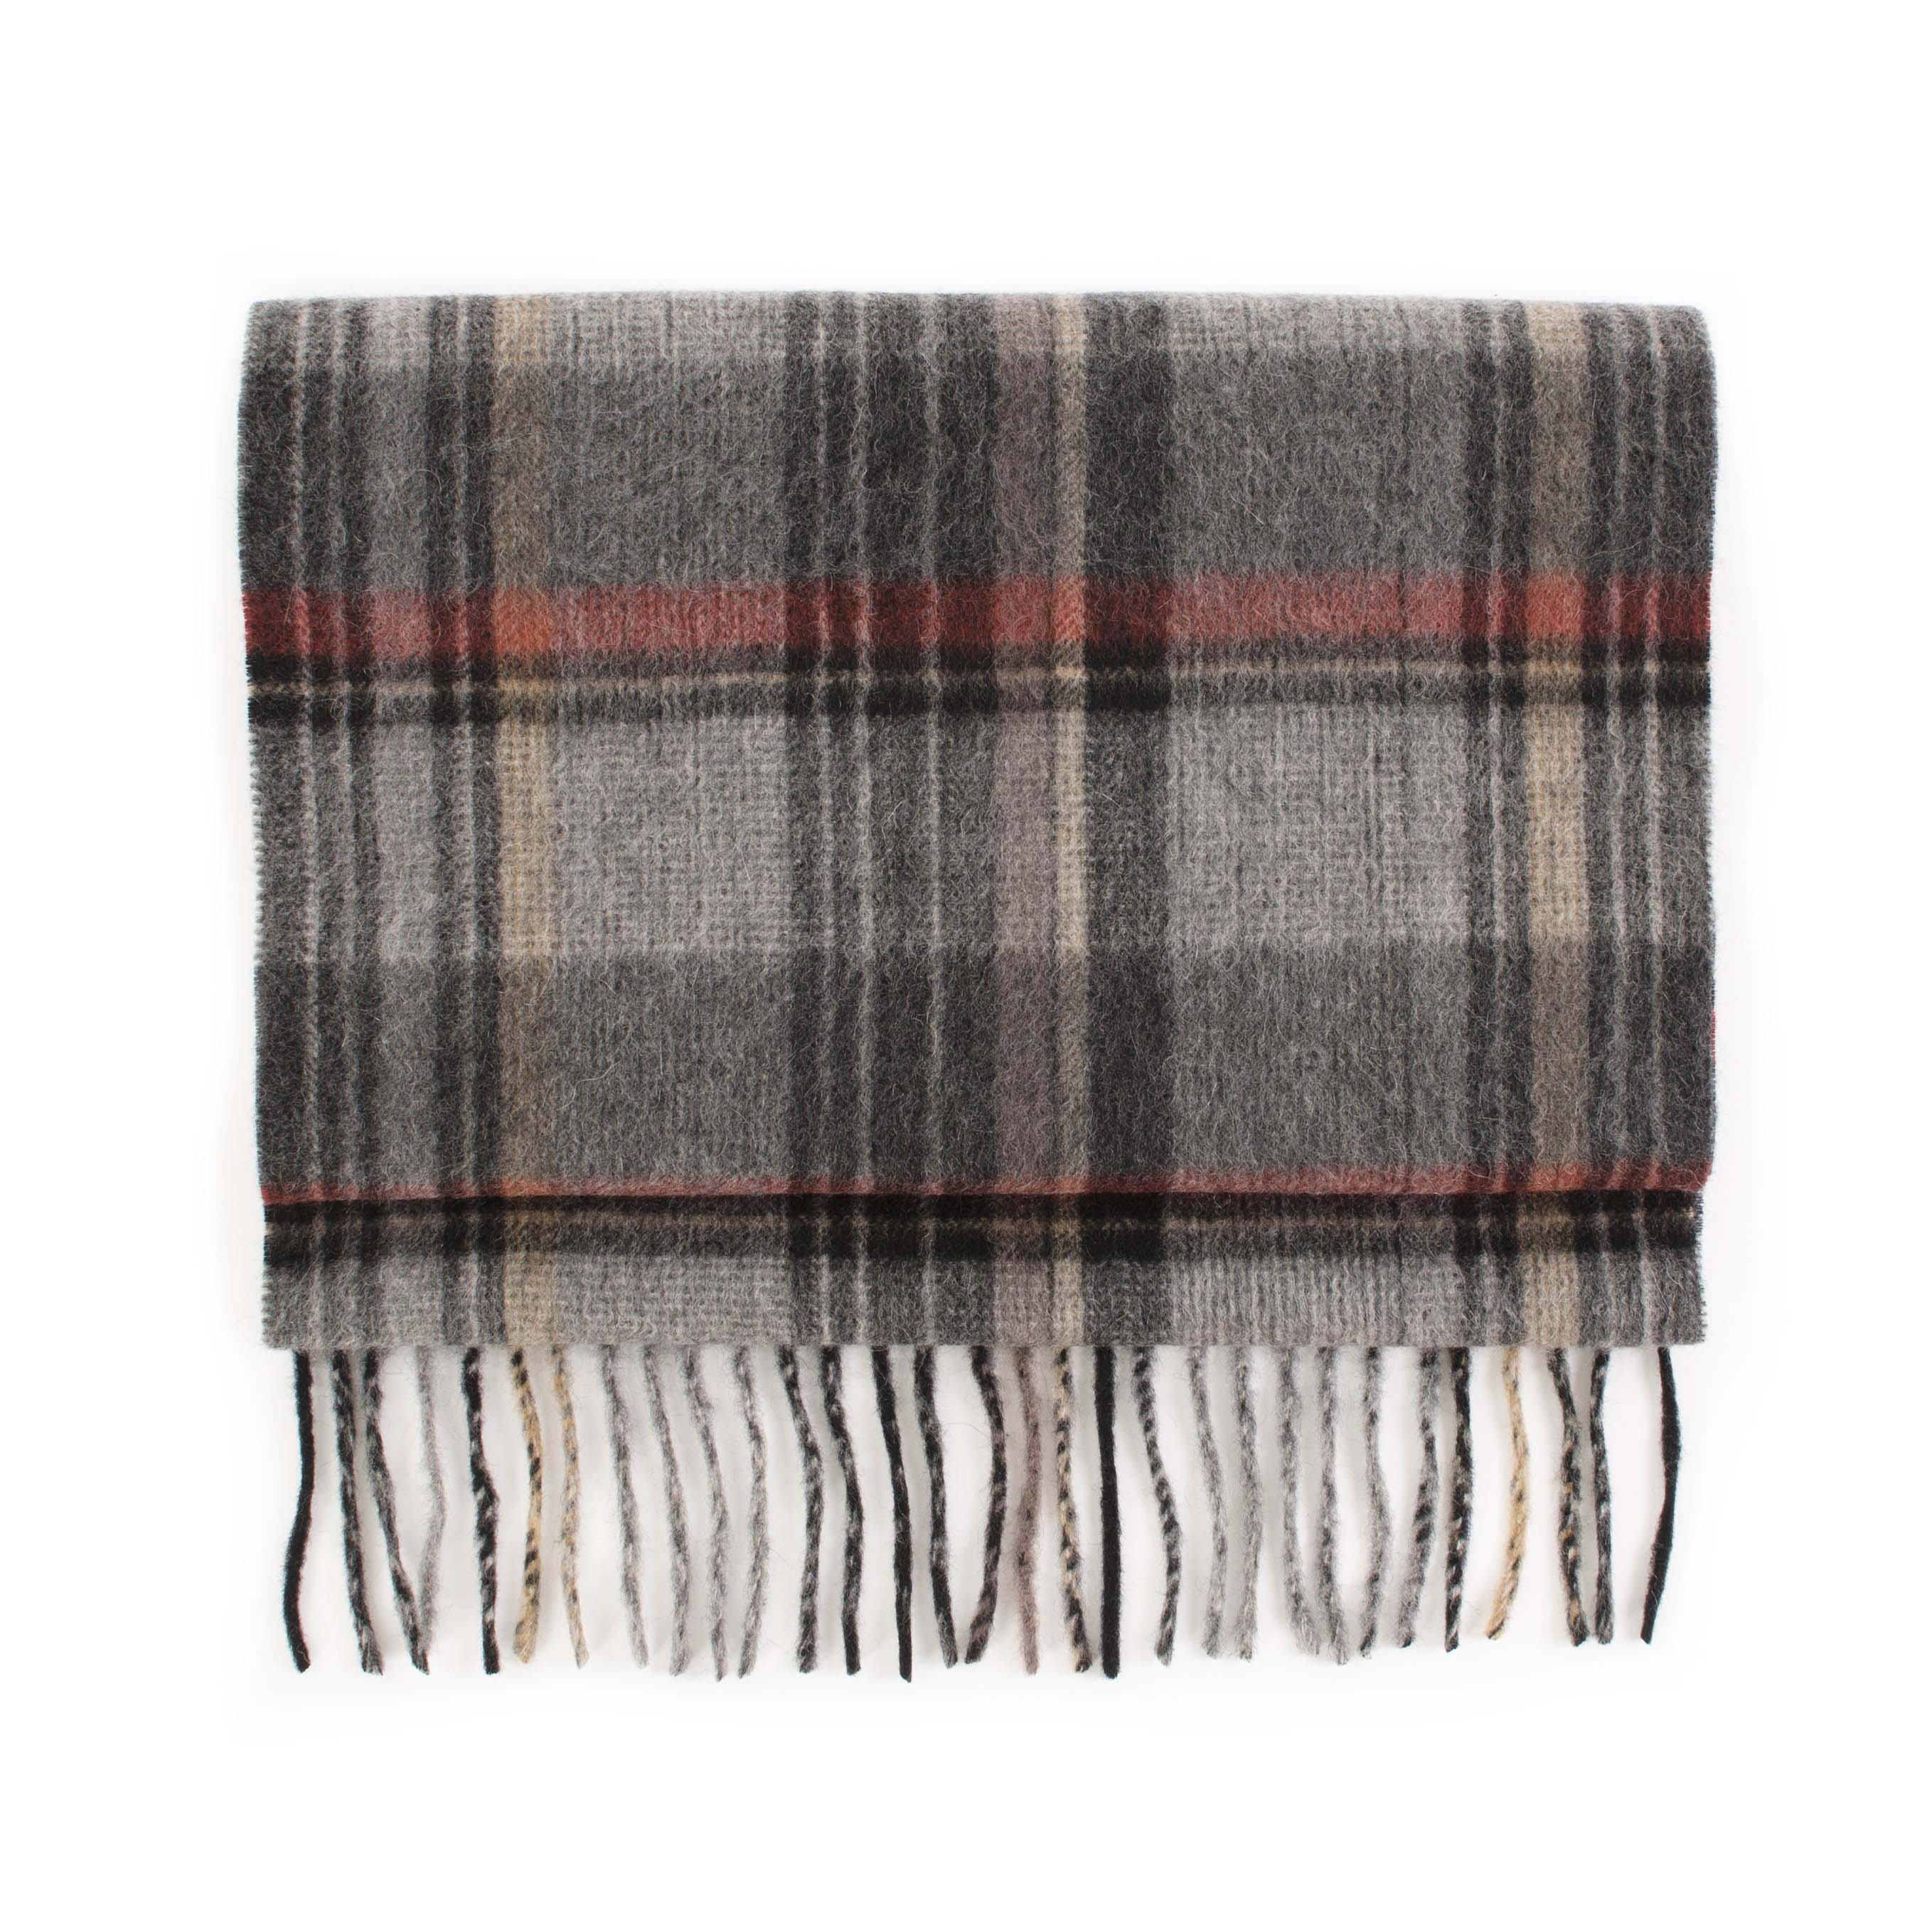 Scarf cashmere check, grey, red